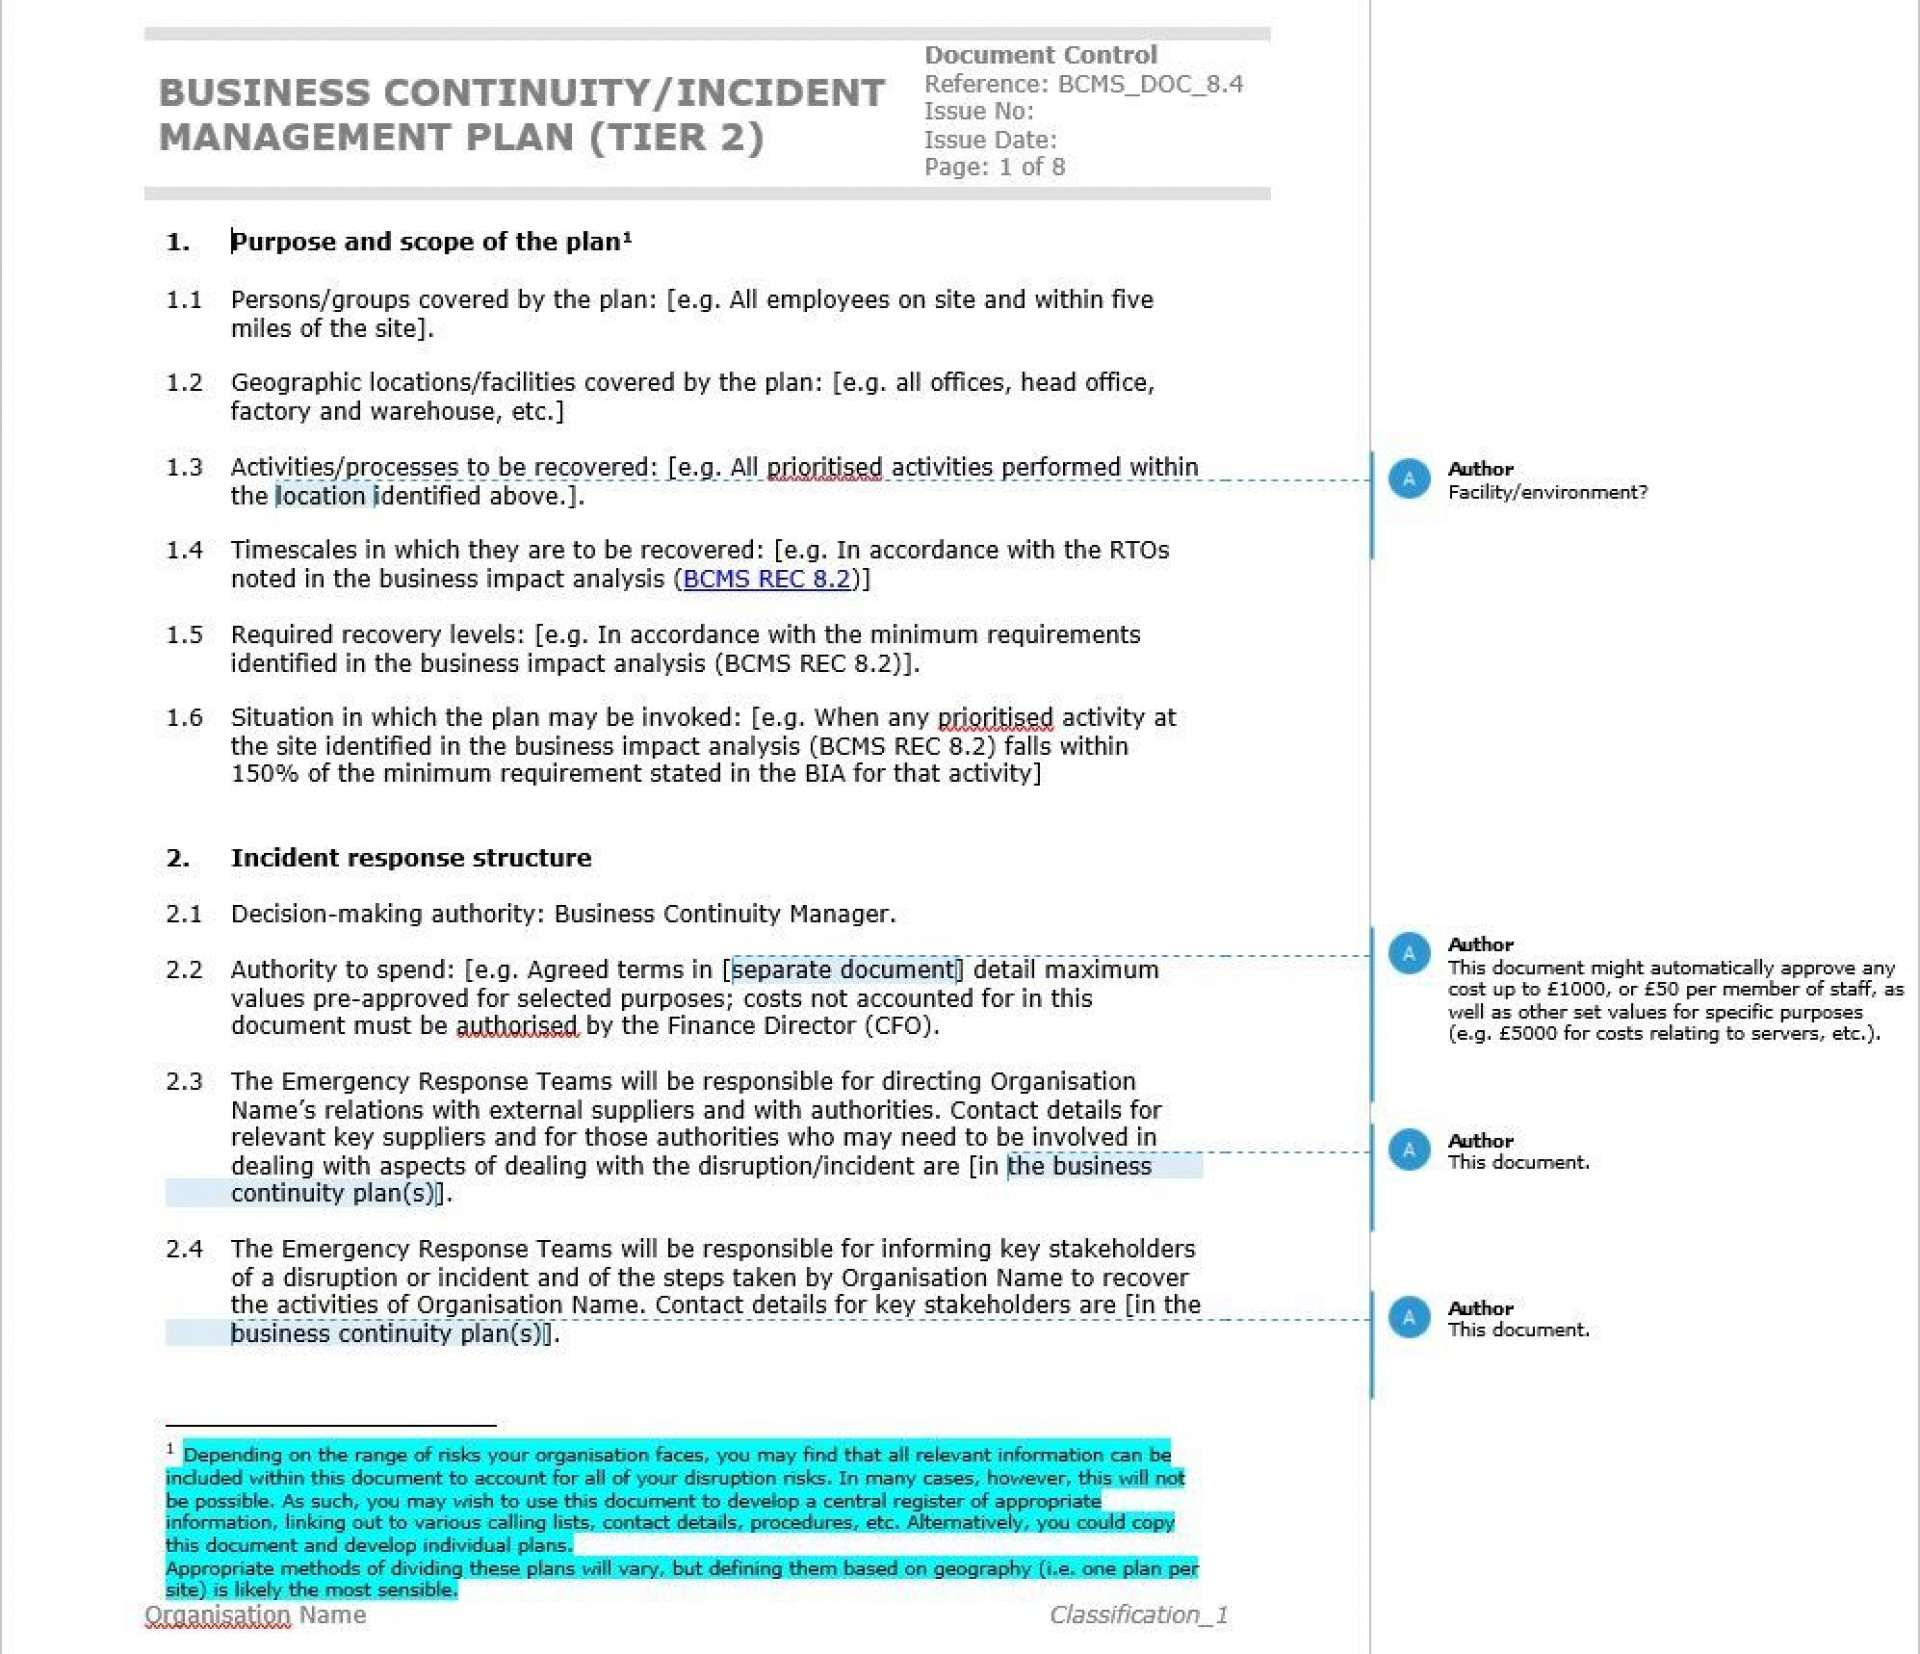 002 Fantastic Simple Busines Continuity Plan Template Sample  Australia For Small Businesse Basic Example1920